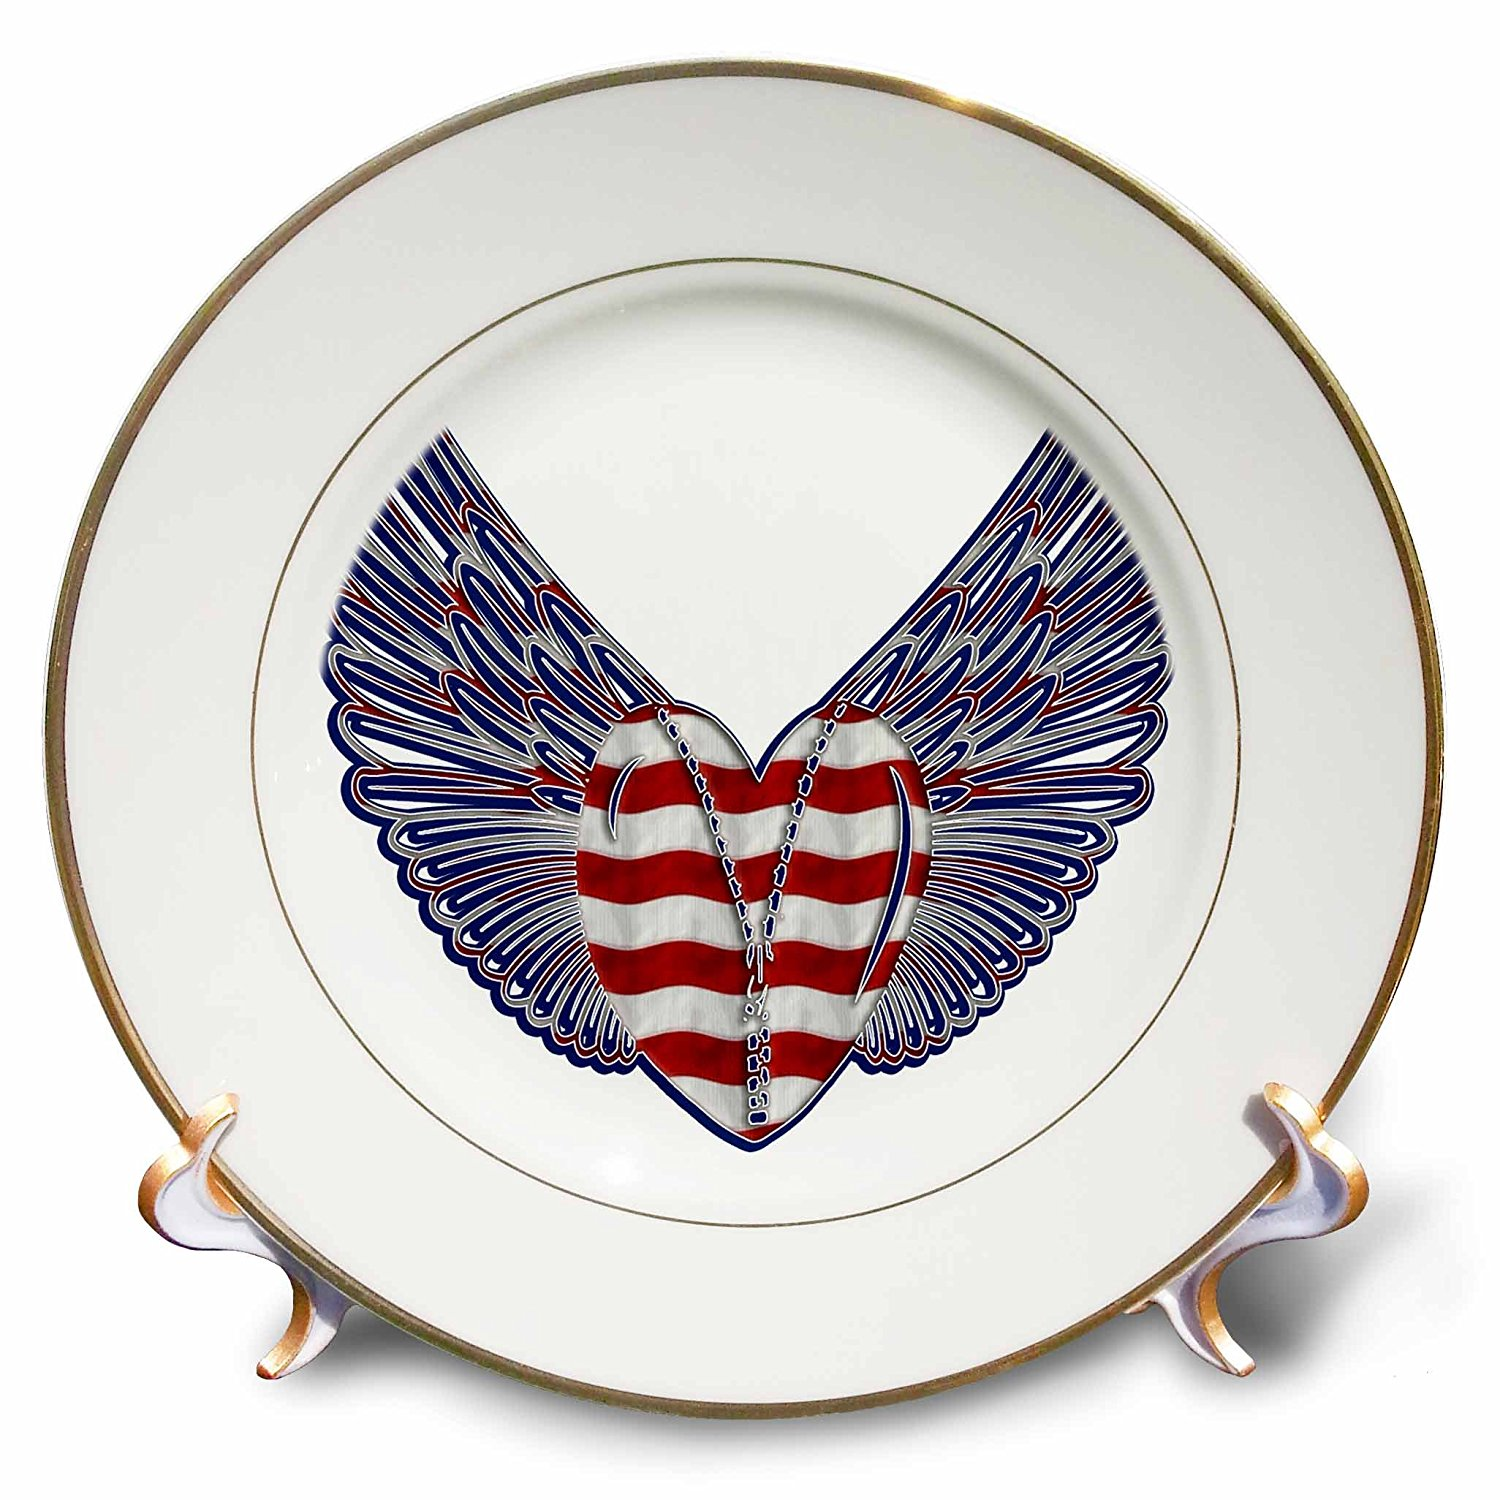 Anne Marie Baugh - Hearts - A Red and White Stripped Heart With A Zipper And Blue and Red Wings - 8 inch Porcelain Plate (cp_235928_1)